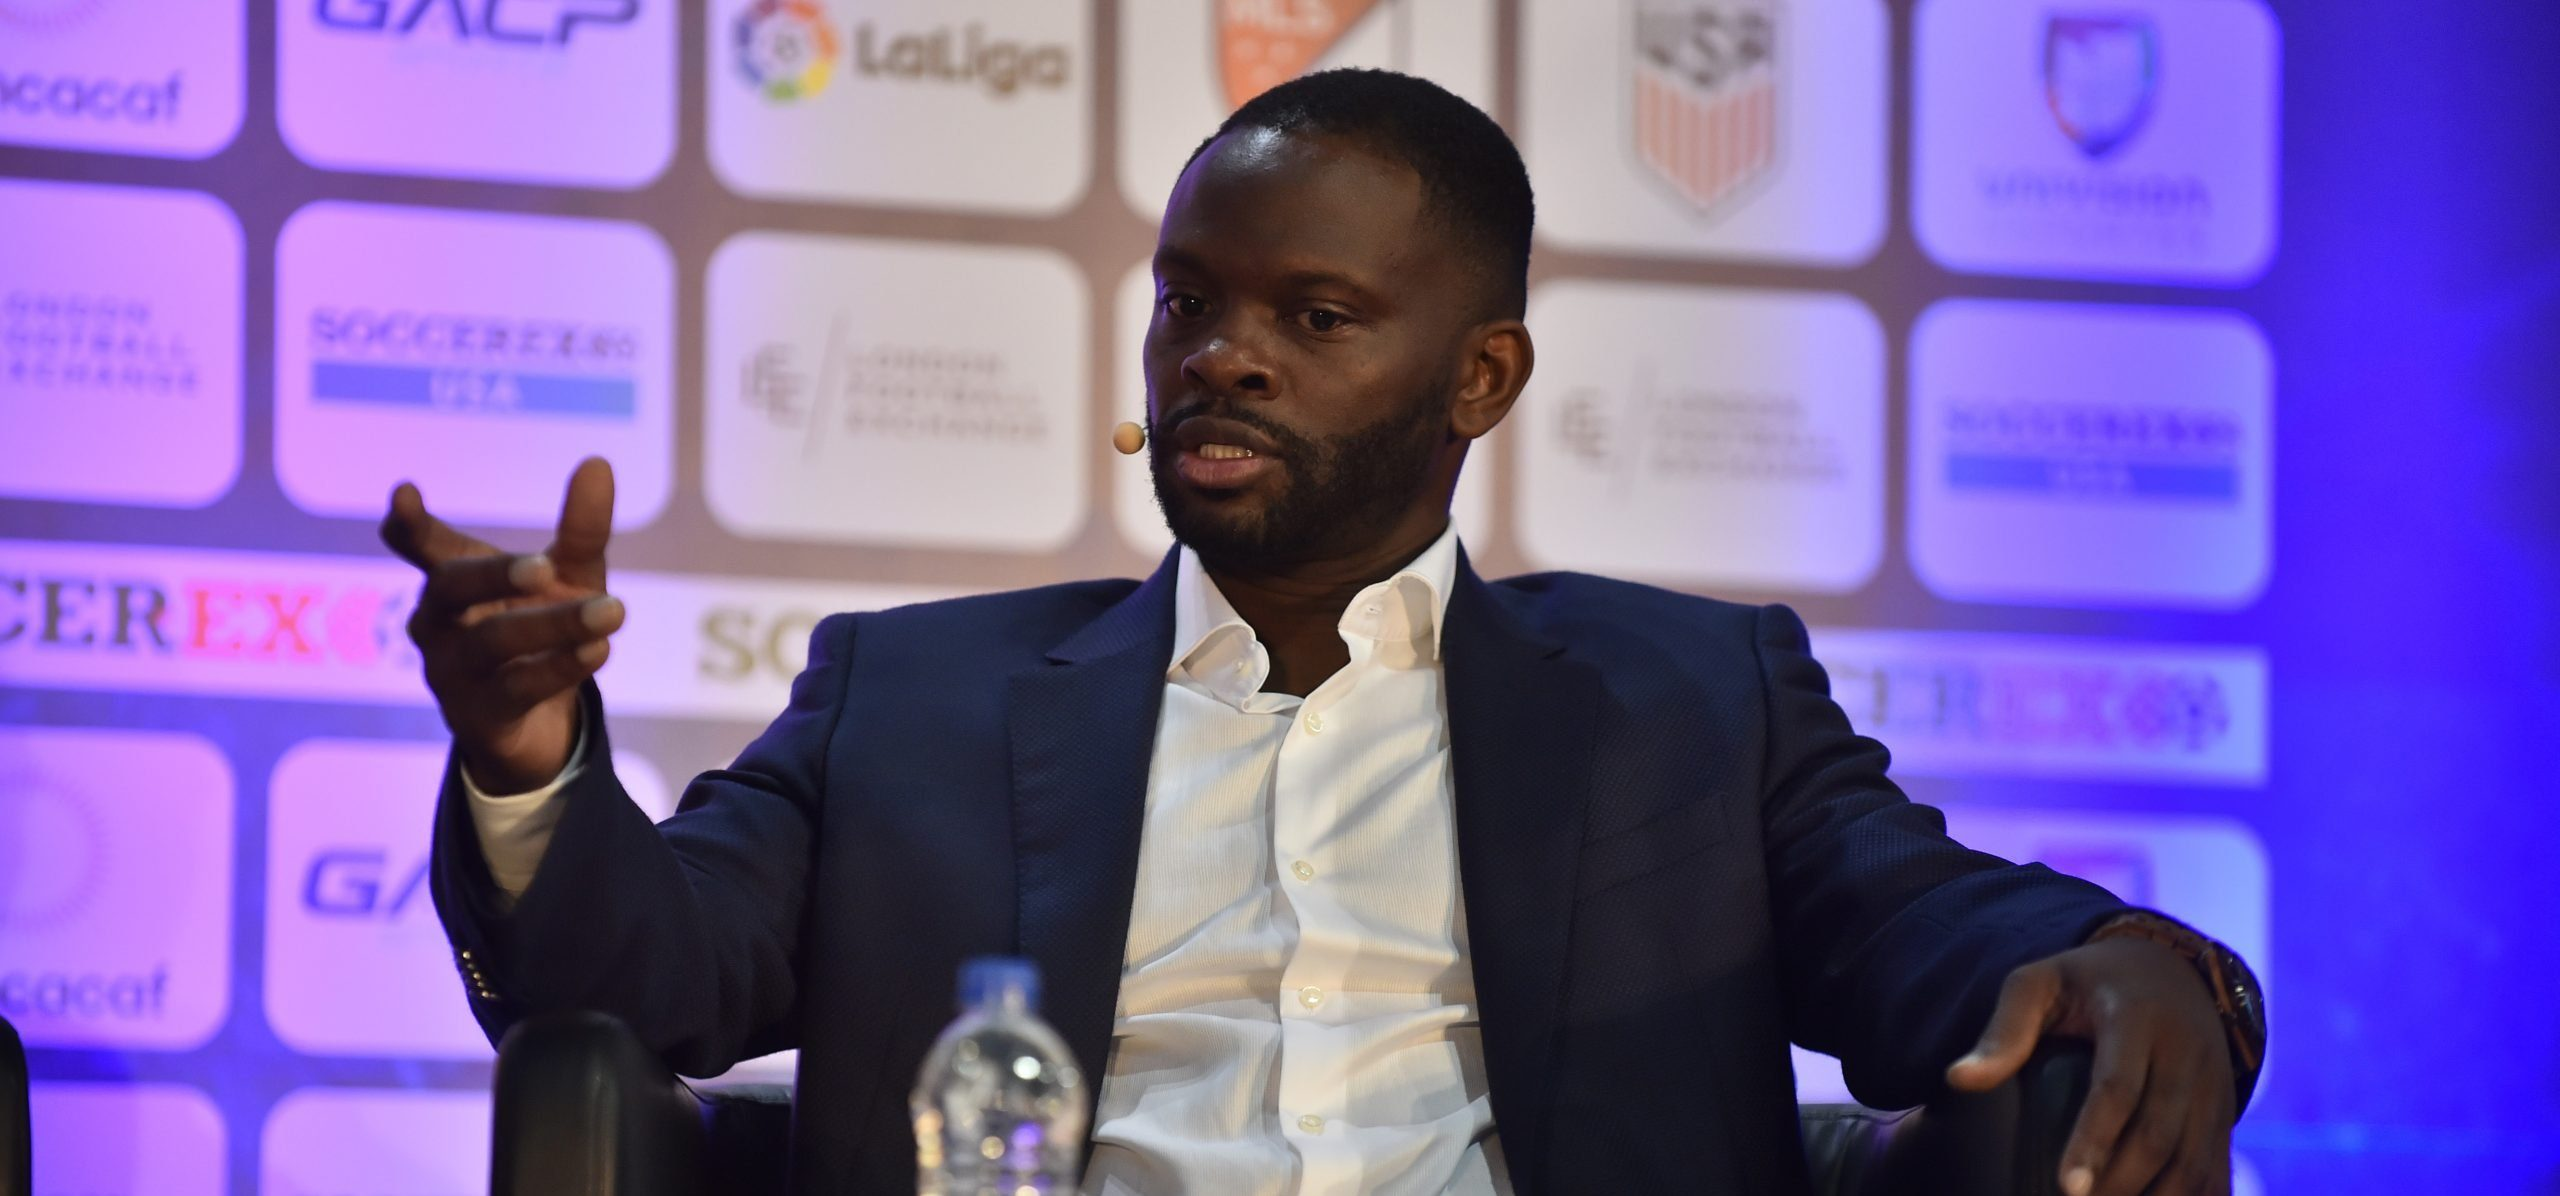 Louis Saha, AxisStars and helping athletes take control of their futures